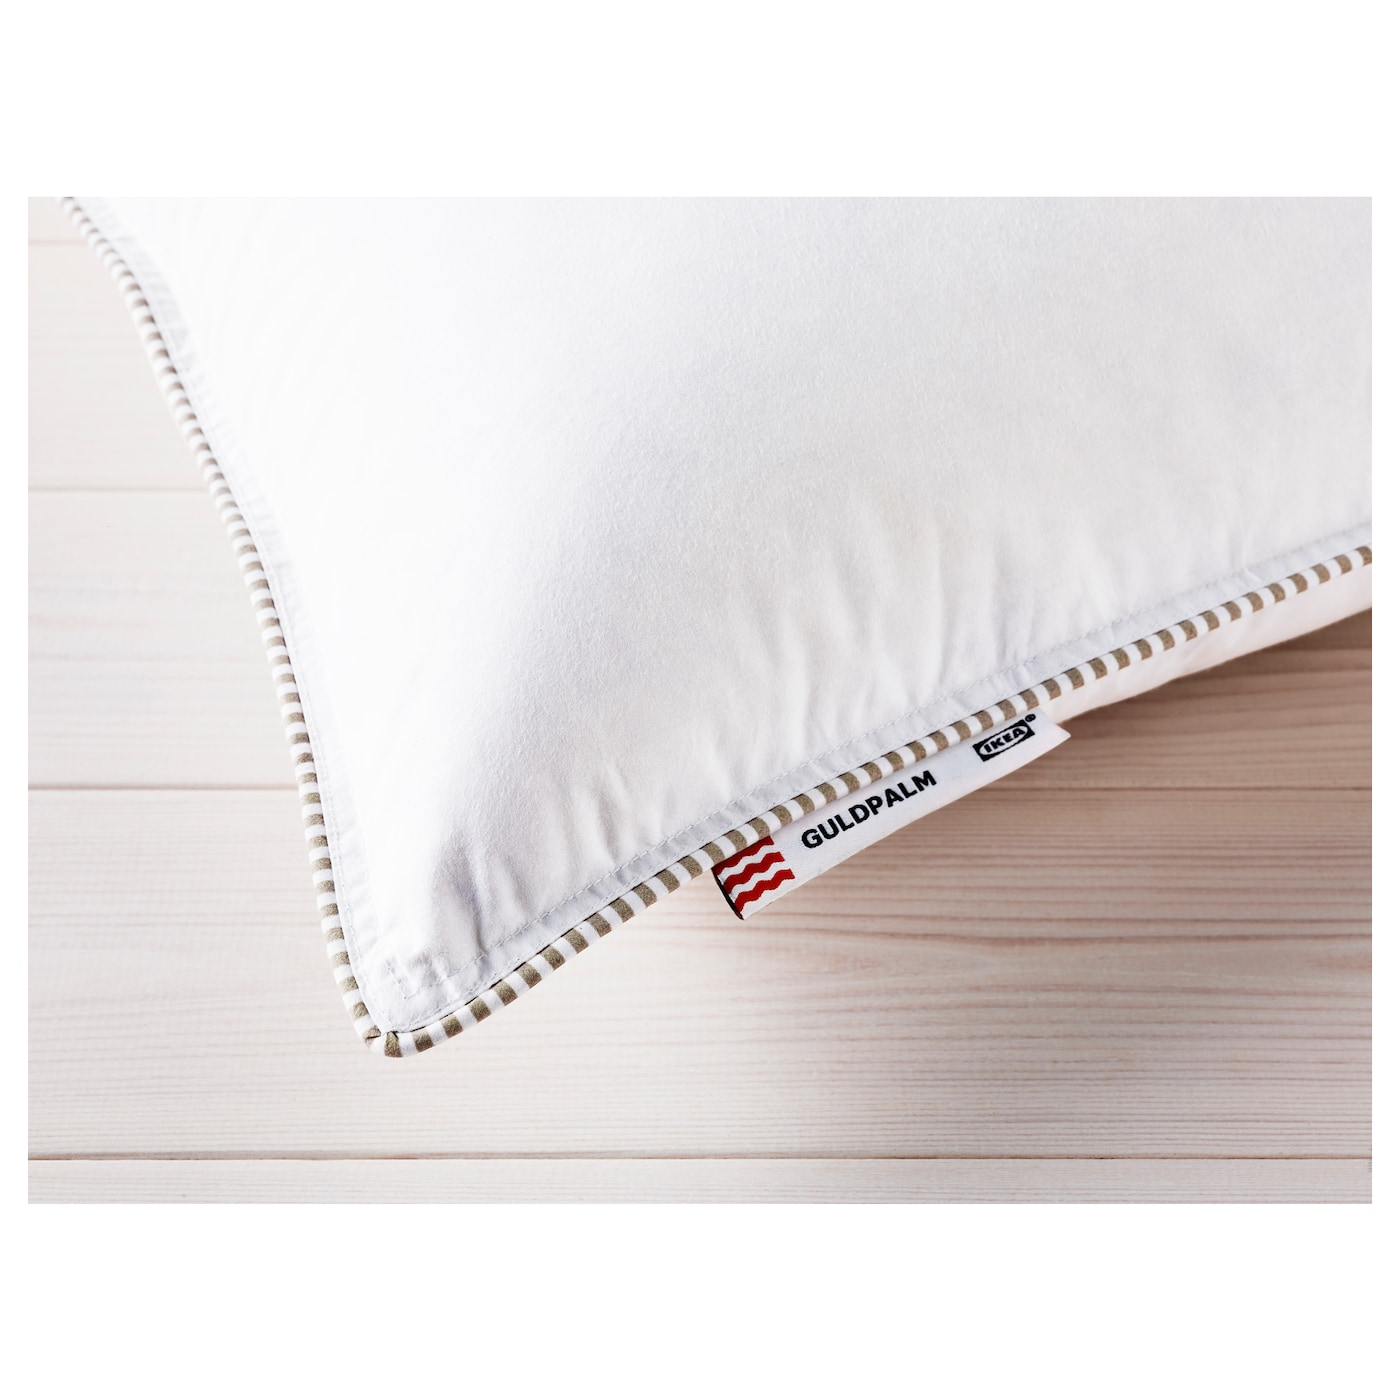 IKEA GULDPALM pillow, softer